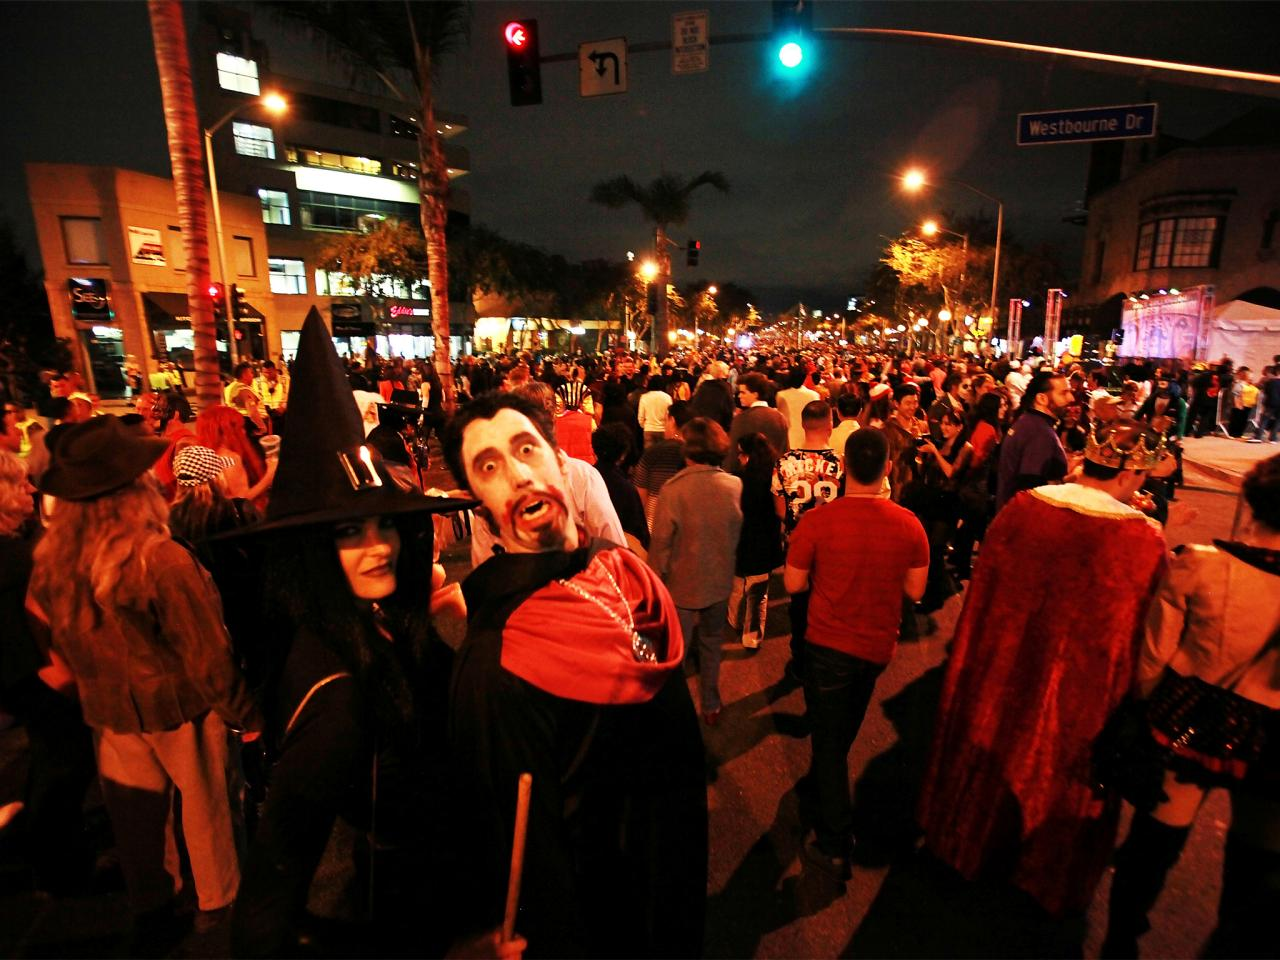 los angeles: what to do this halloween weekend - press pass la